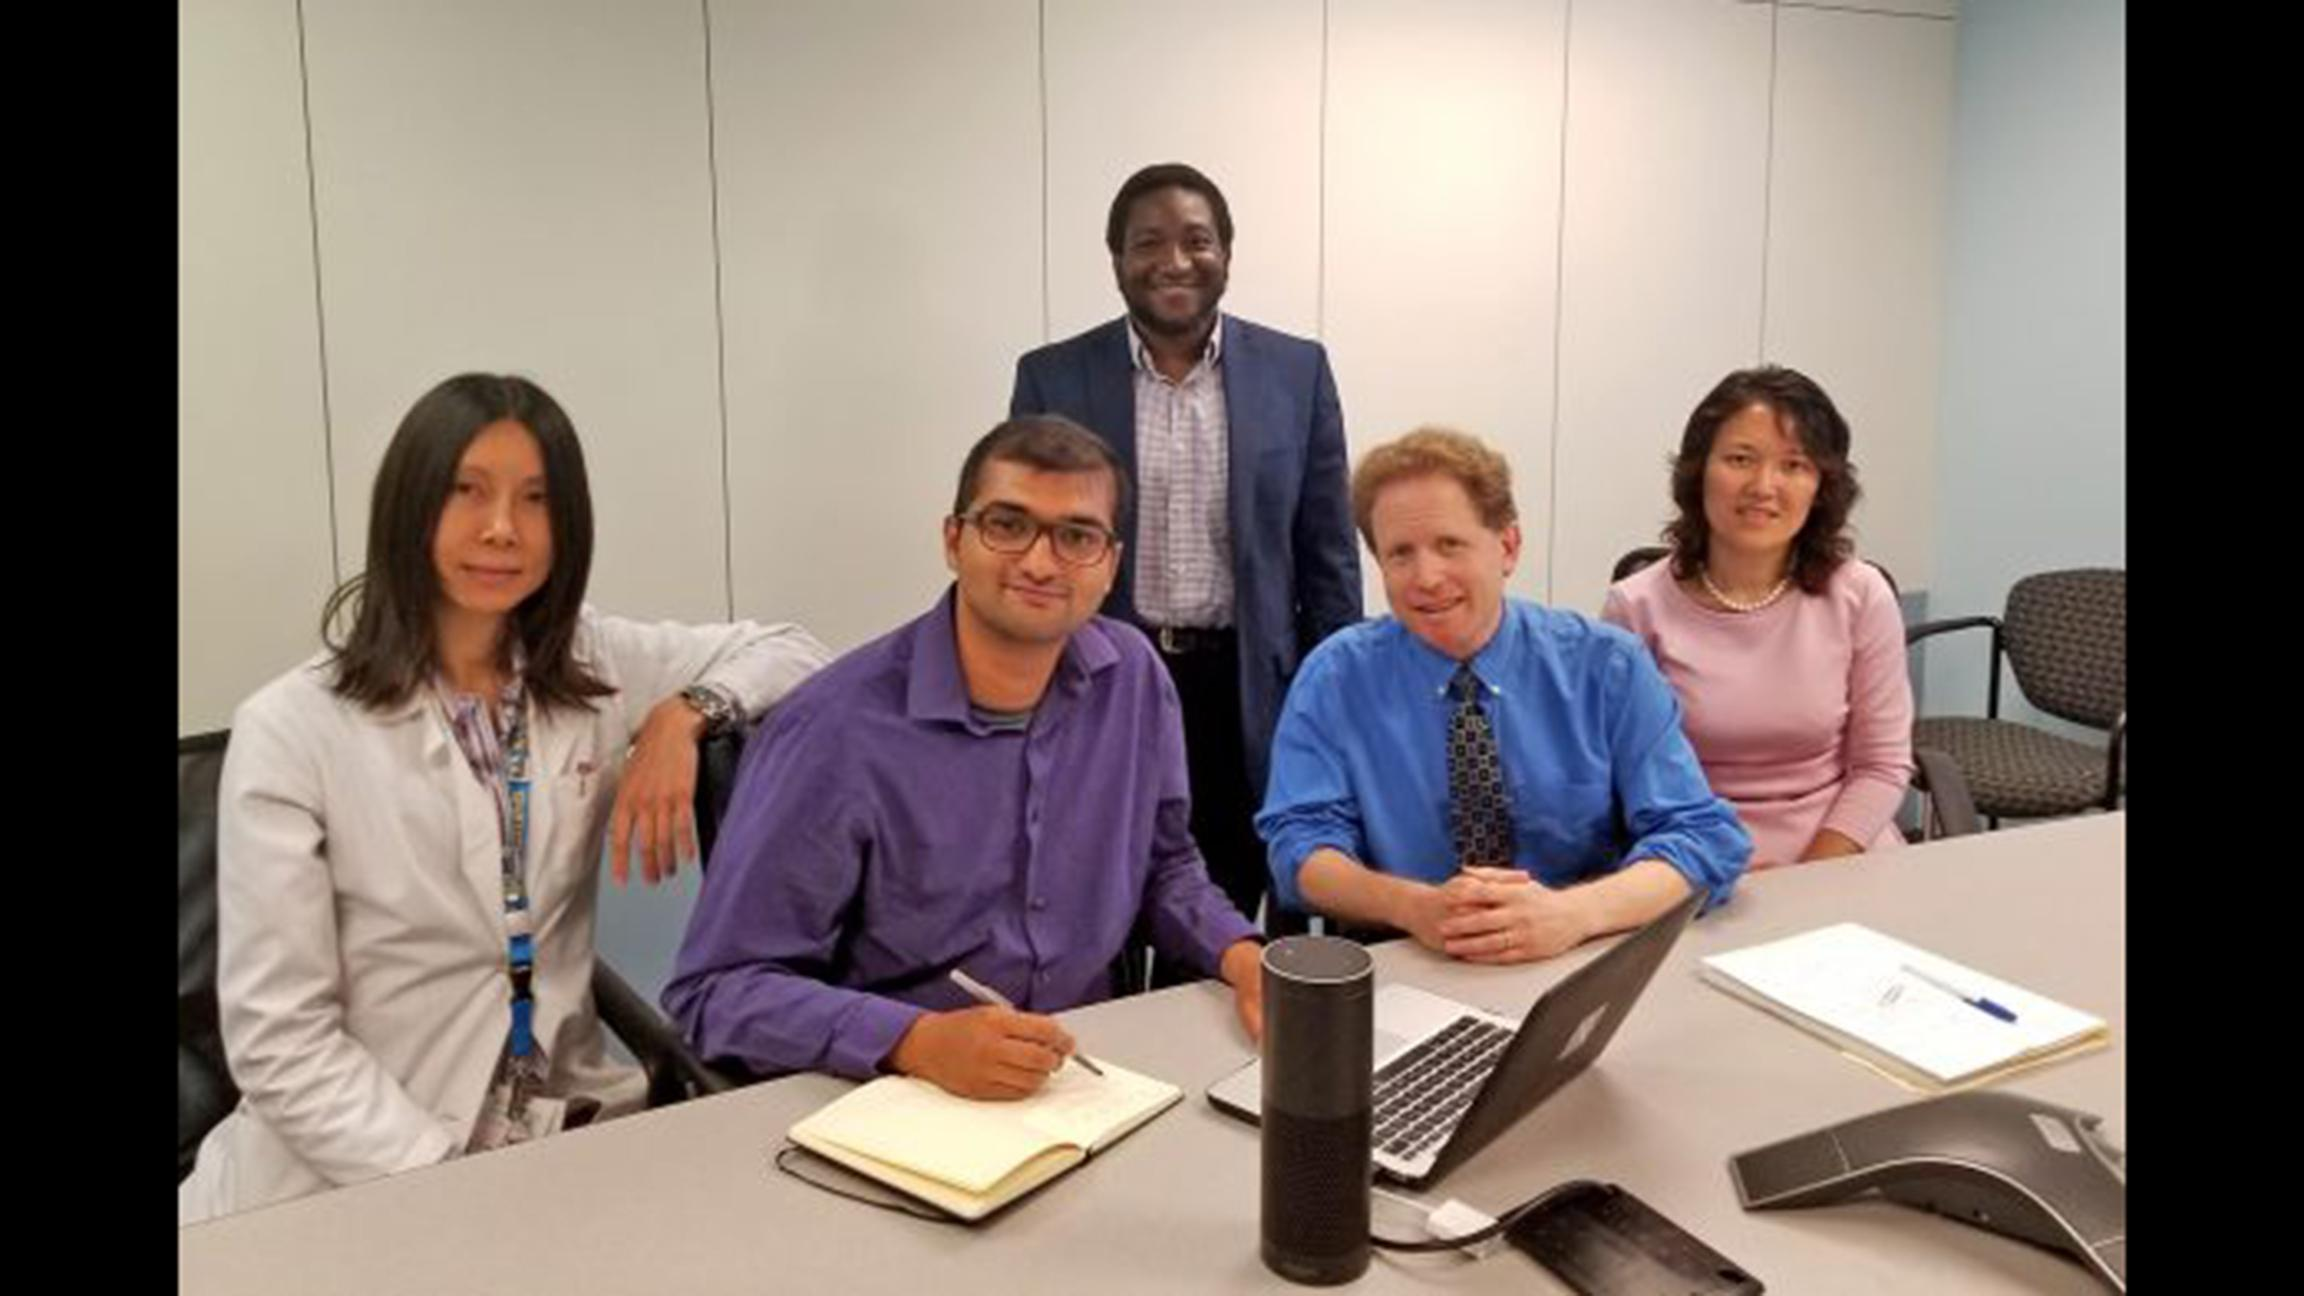 From left: UIC researchers Alex Leow, Faraz Hussain, Olu Ajilore, Ben Gerber and Jun Ma developed DiaBetty, a voice-enabled diabetes coach and educator as part of the Alexa Diabetes Challenge. (Courtesy of the University of Illinois at Chicago)